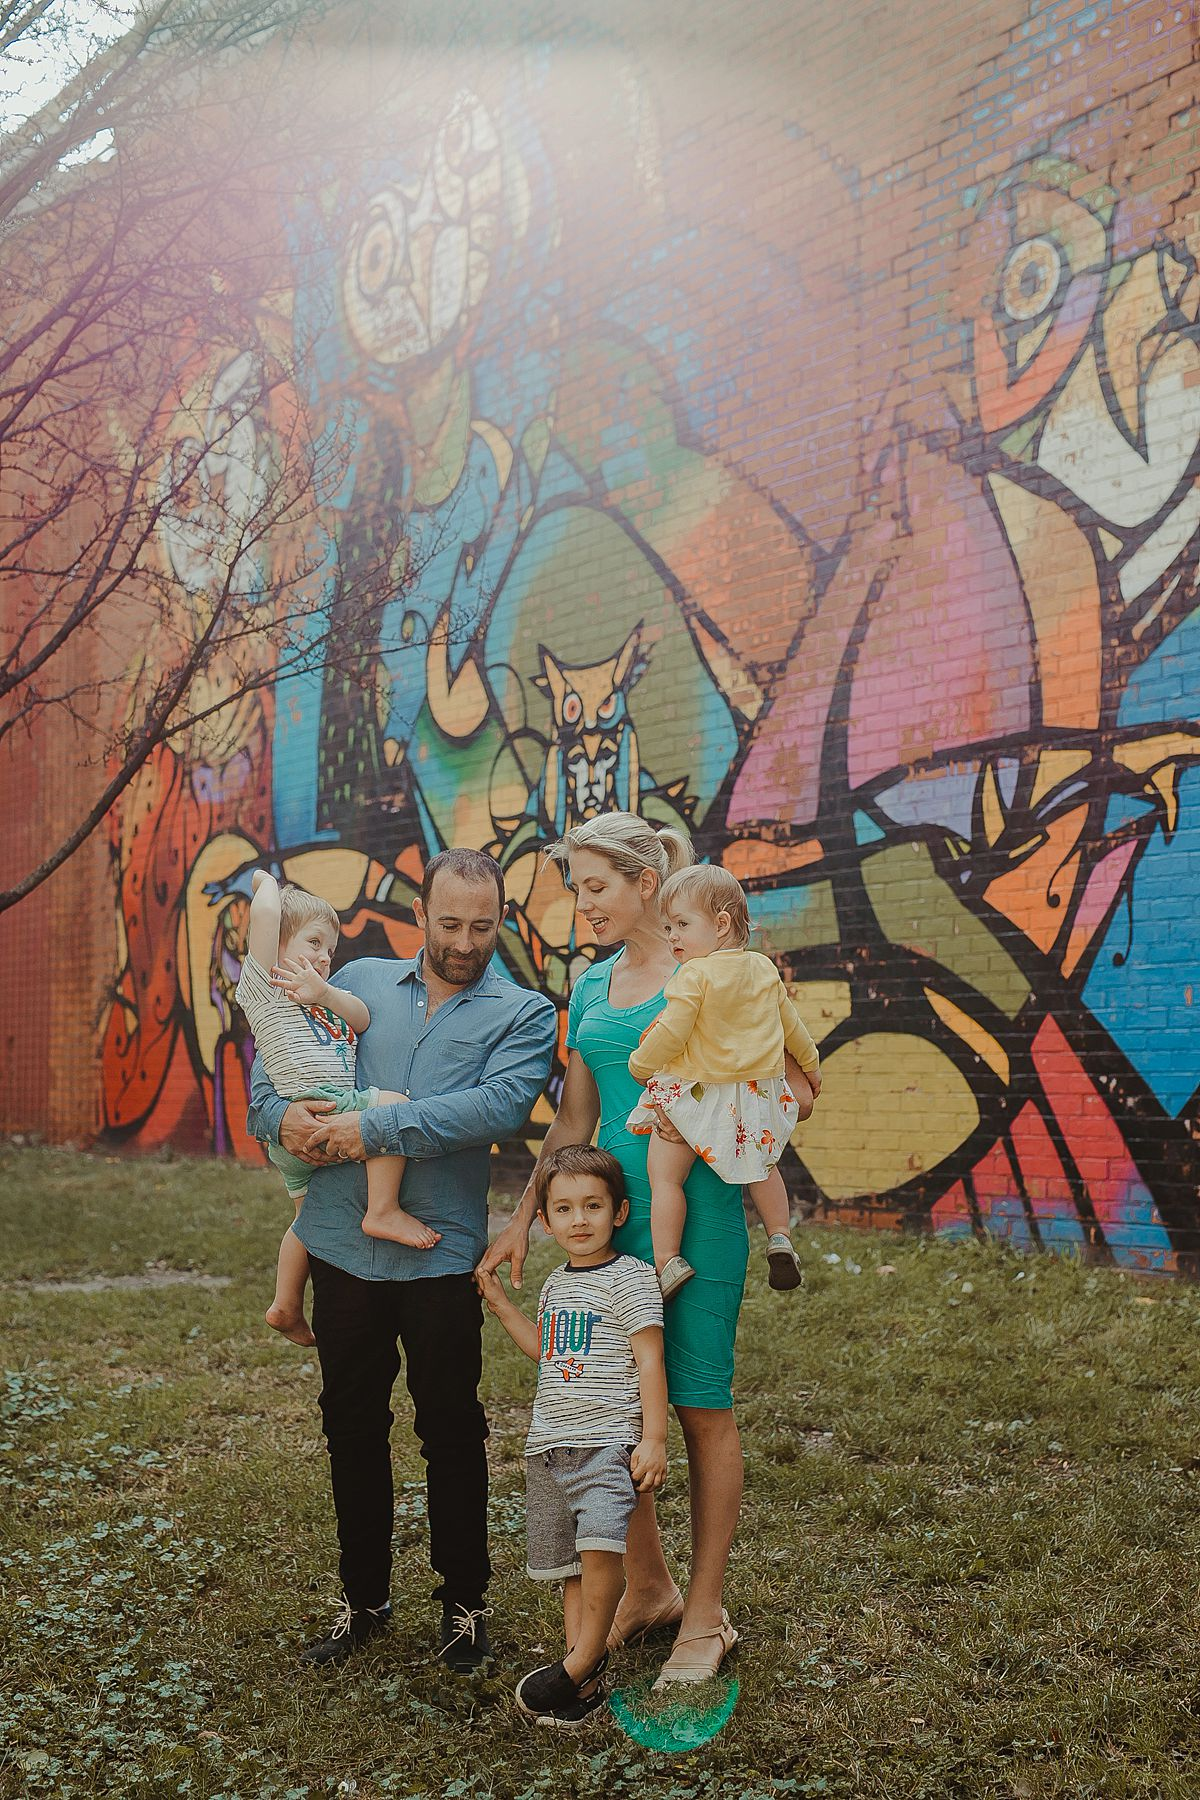 sun drenched family portrait in front of colorful graffiti wall in new york city